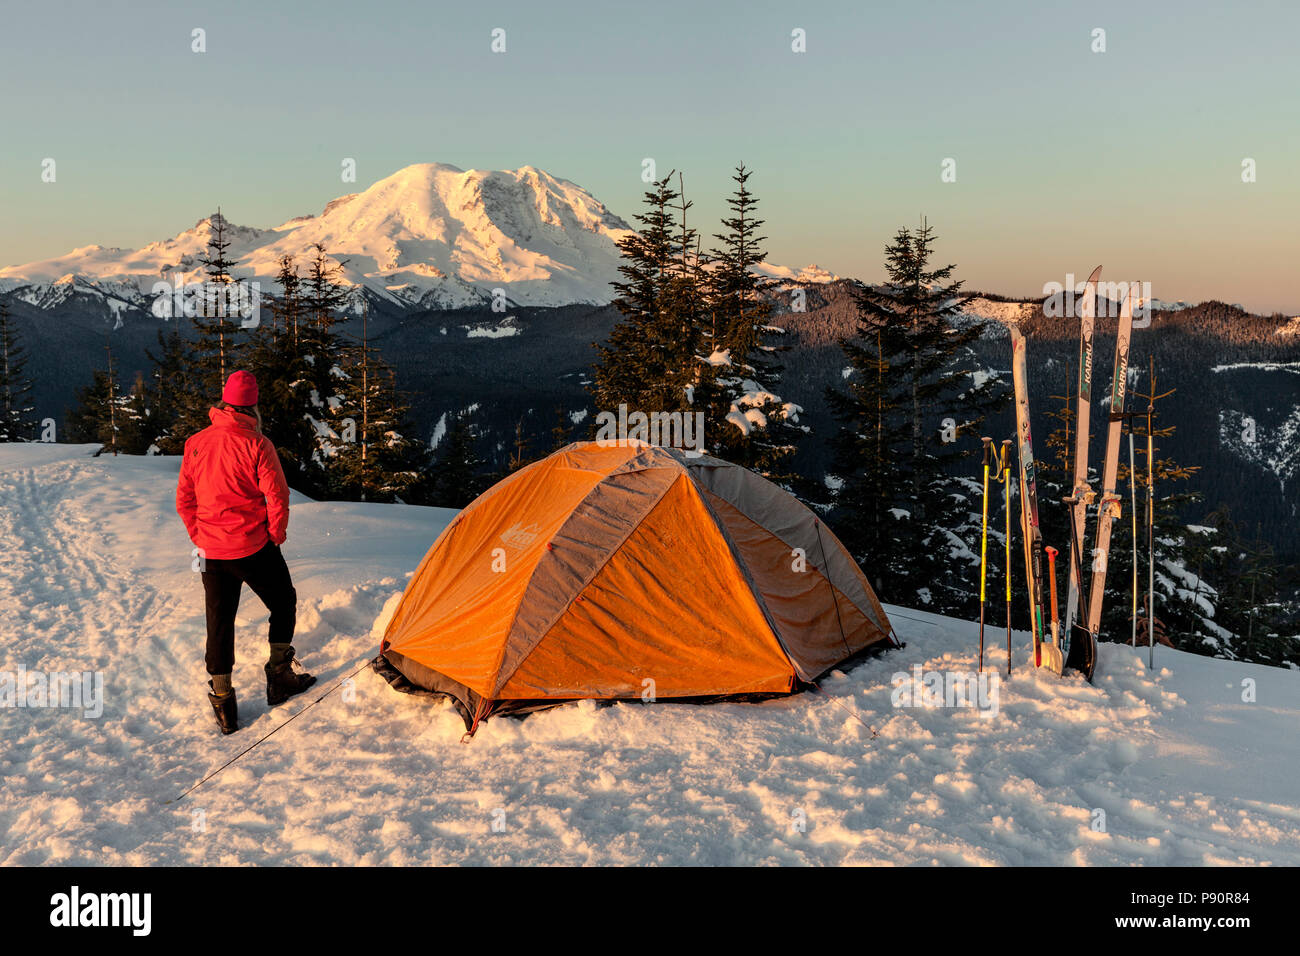 WA14516-00...WASHINGTON - Winter campsite on Suntop Mountain in the Baker-Snoqualmie National Forest. - Stock Image